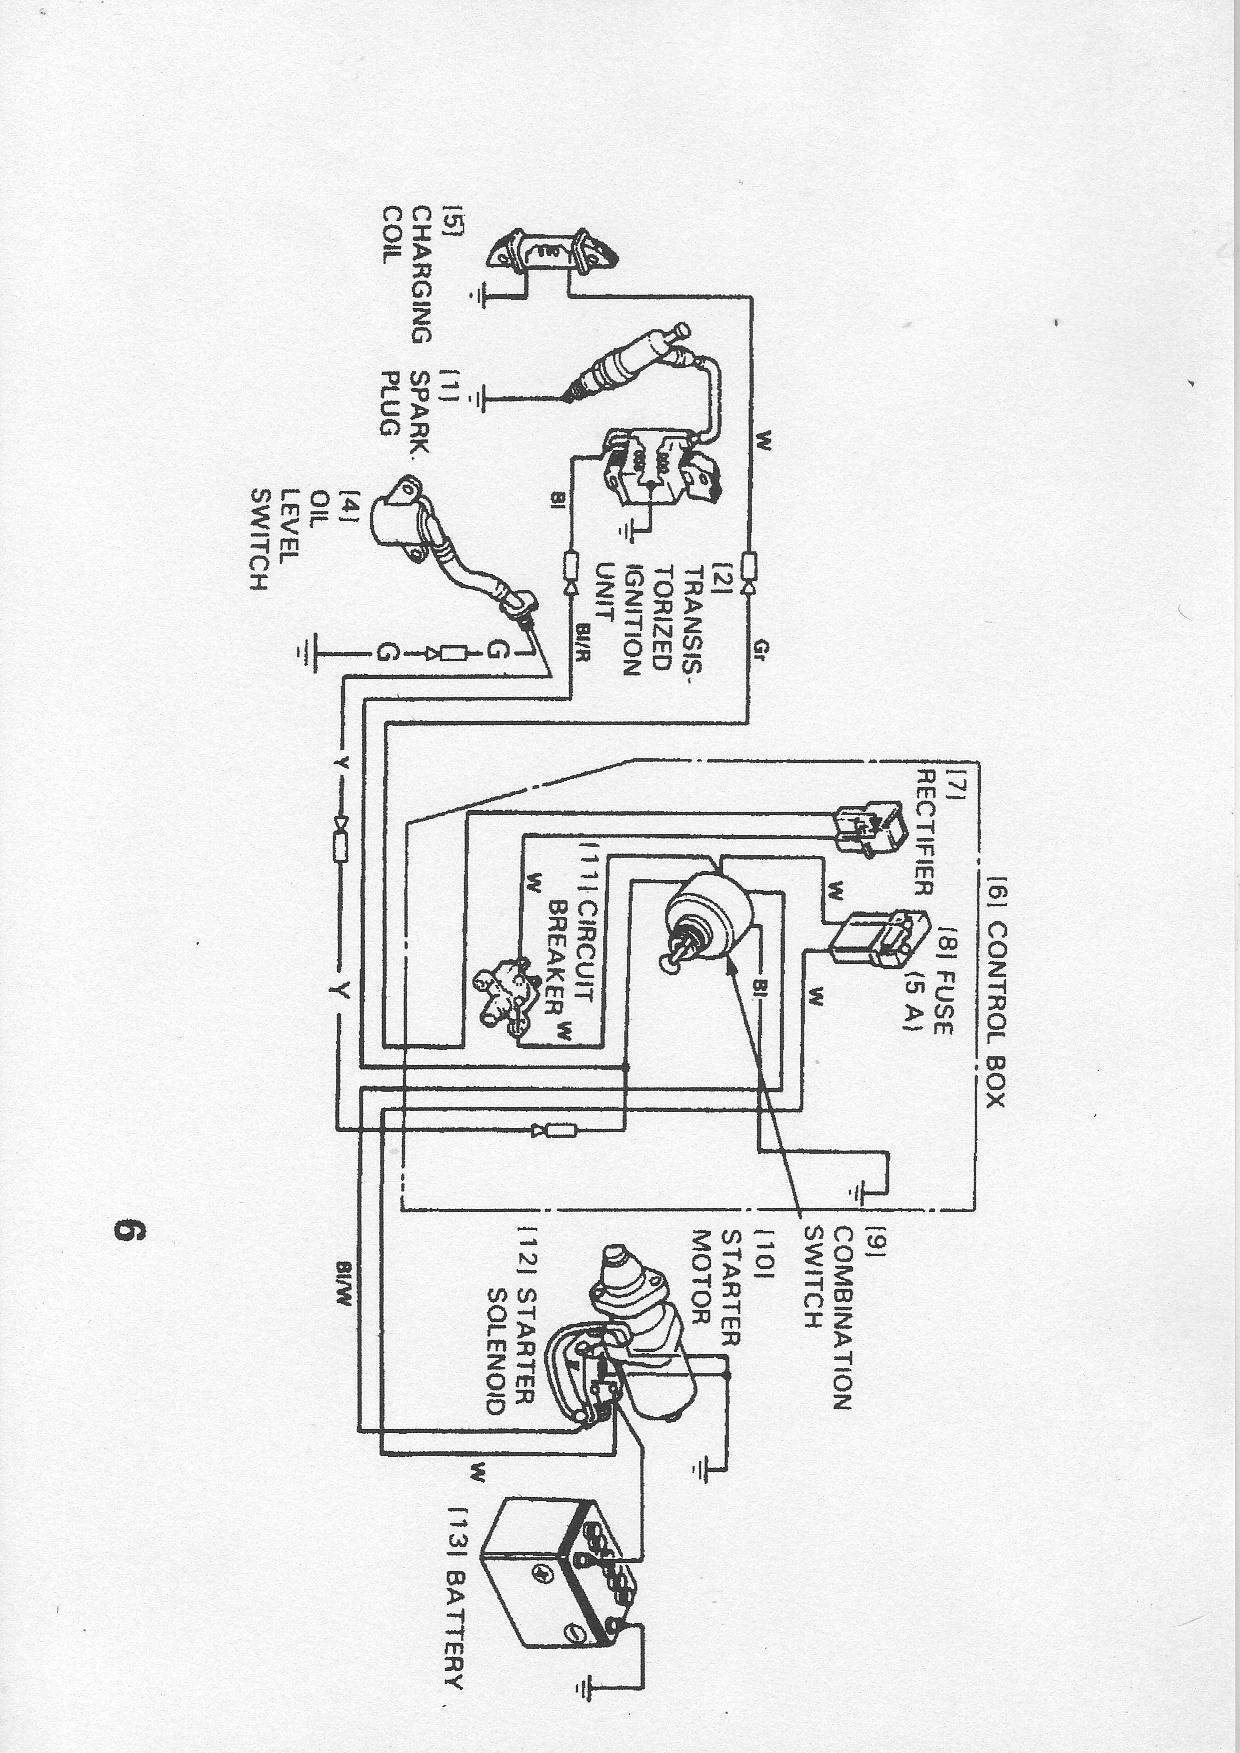 wiring diagram honda gx390   26 wiring diagram images